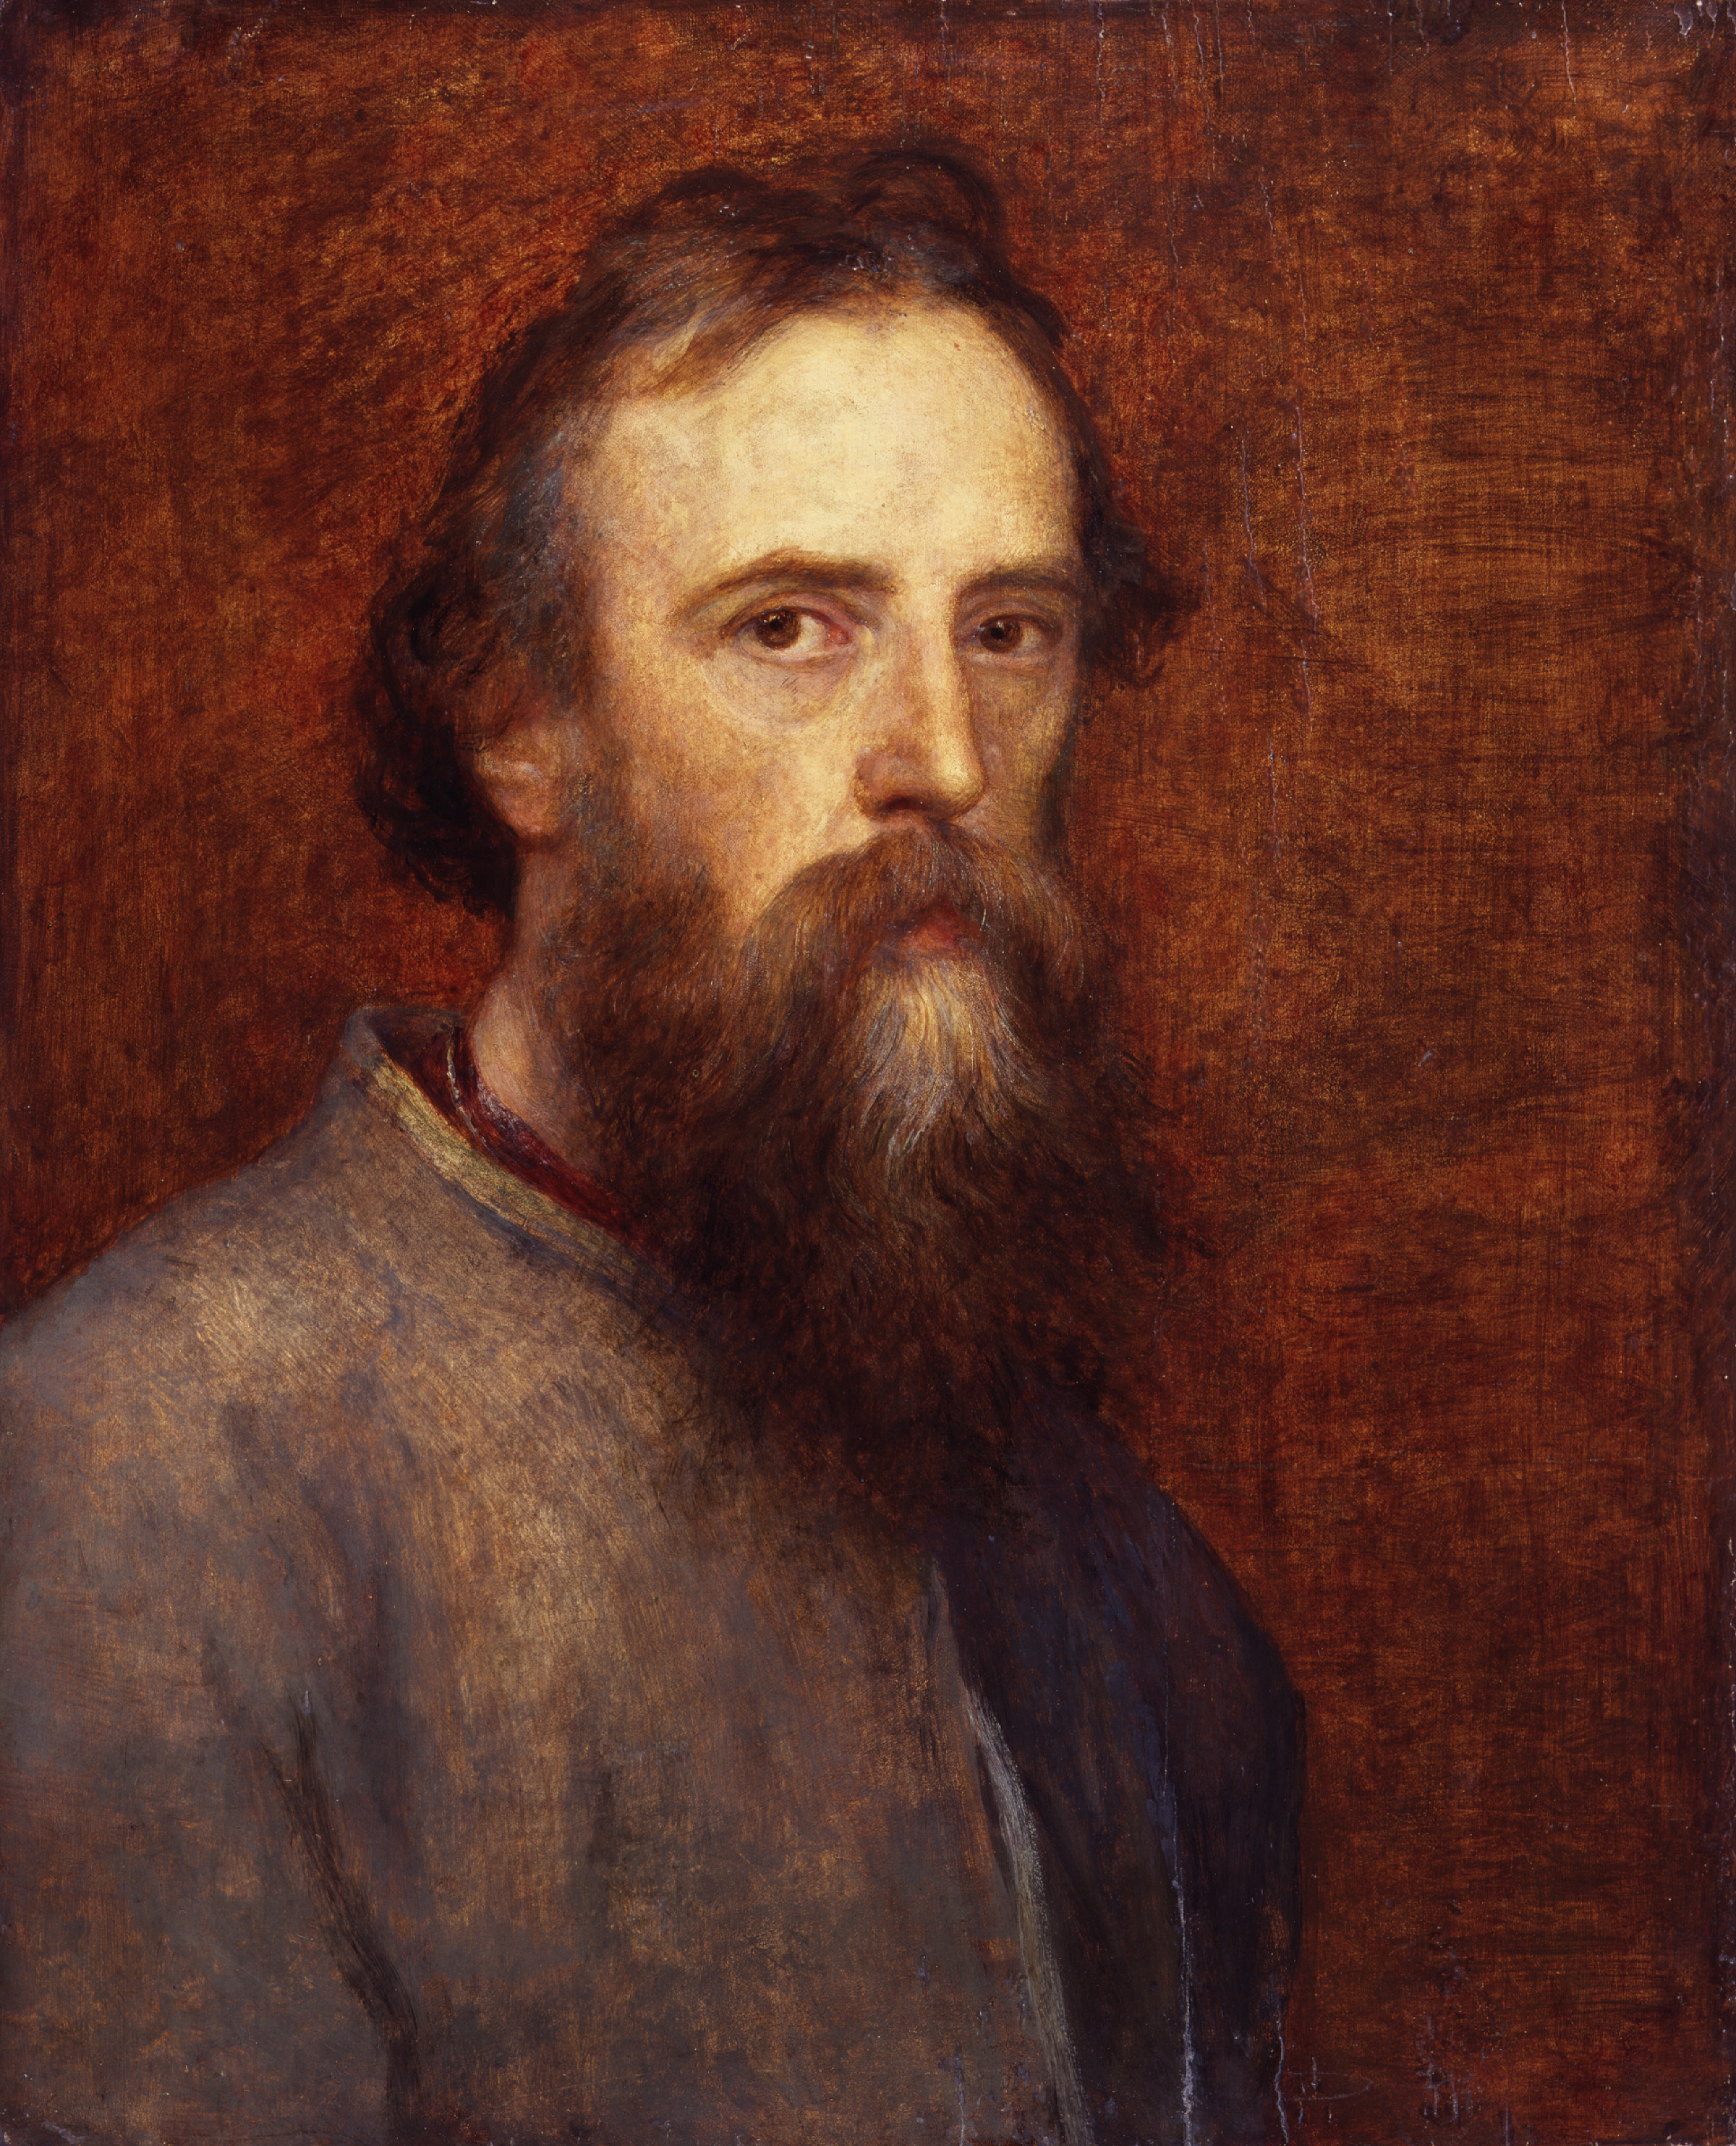 Self portrait by George Frederic Watts, oil on panel, c.1860 © National Portrait Gallery, London